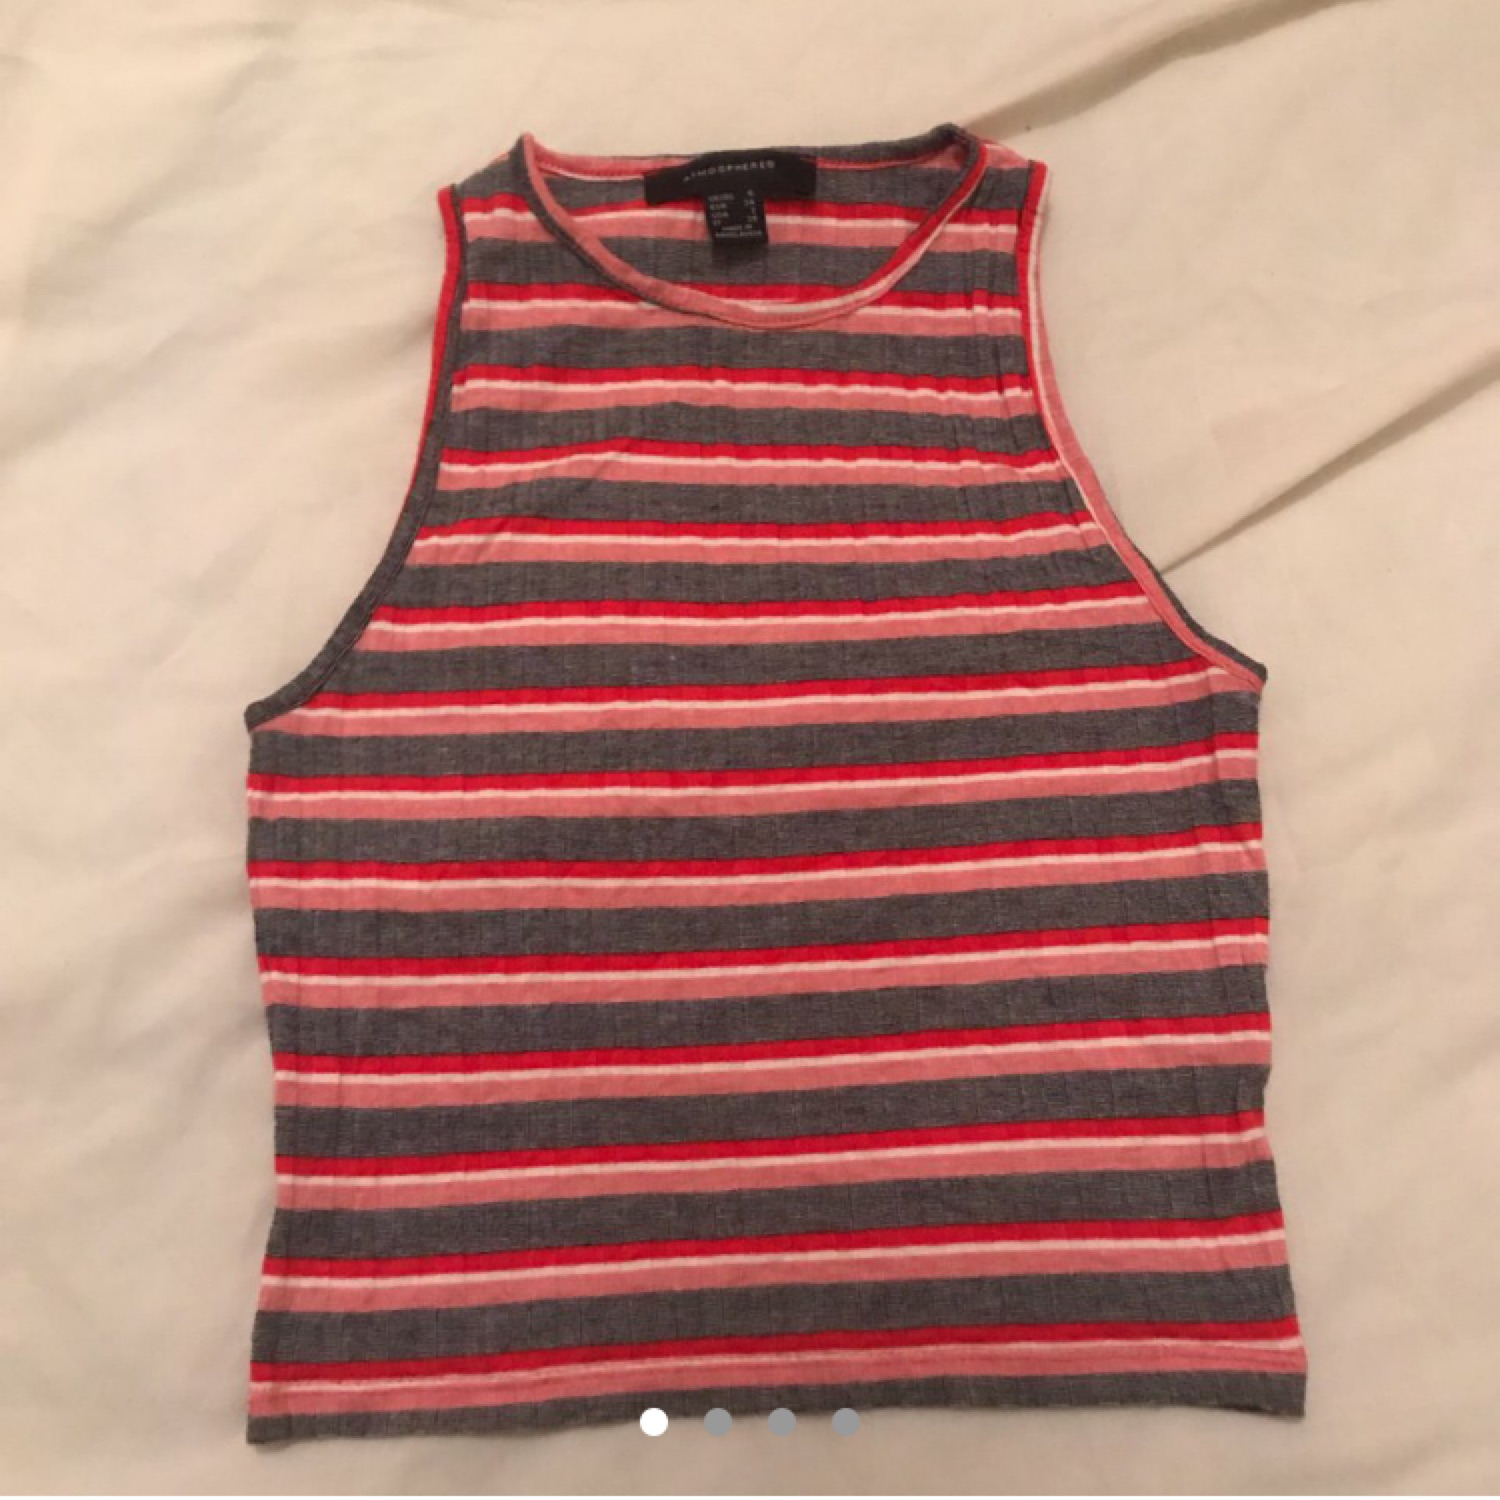 Strip Patterned Crop/Vest Top